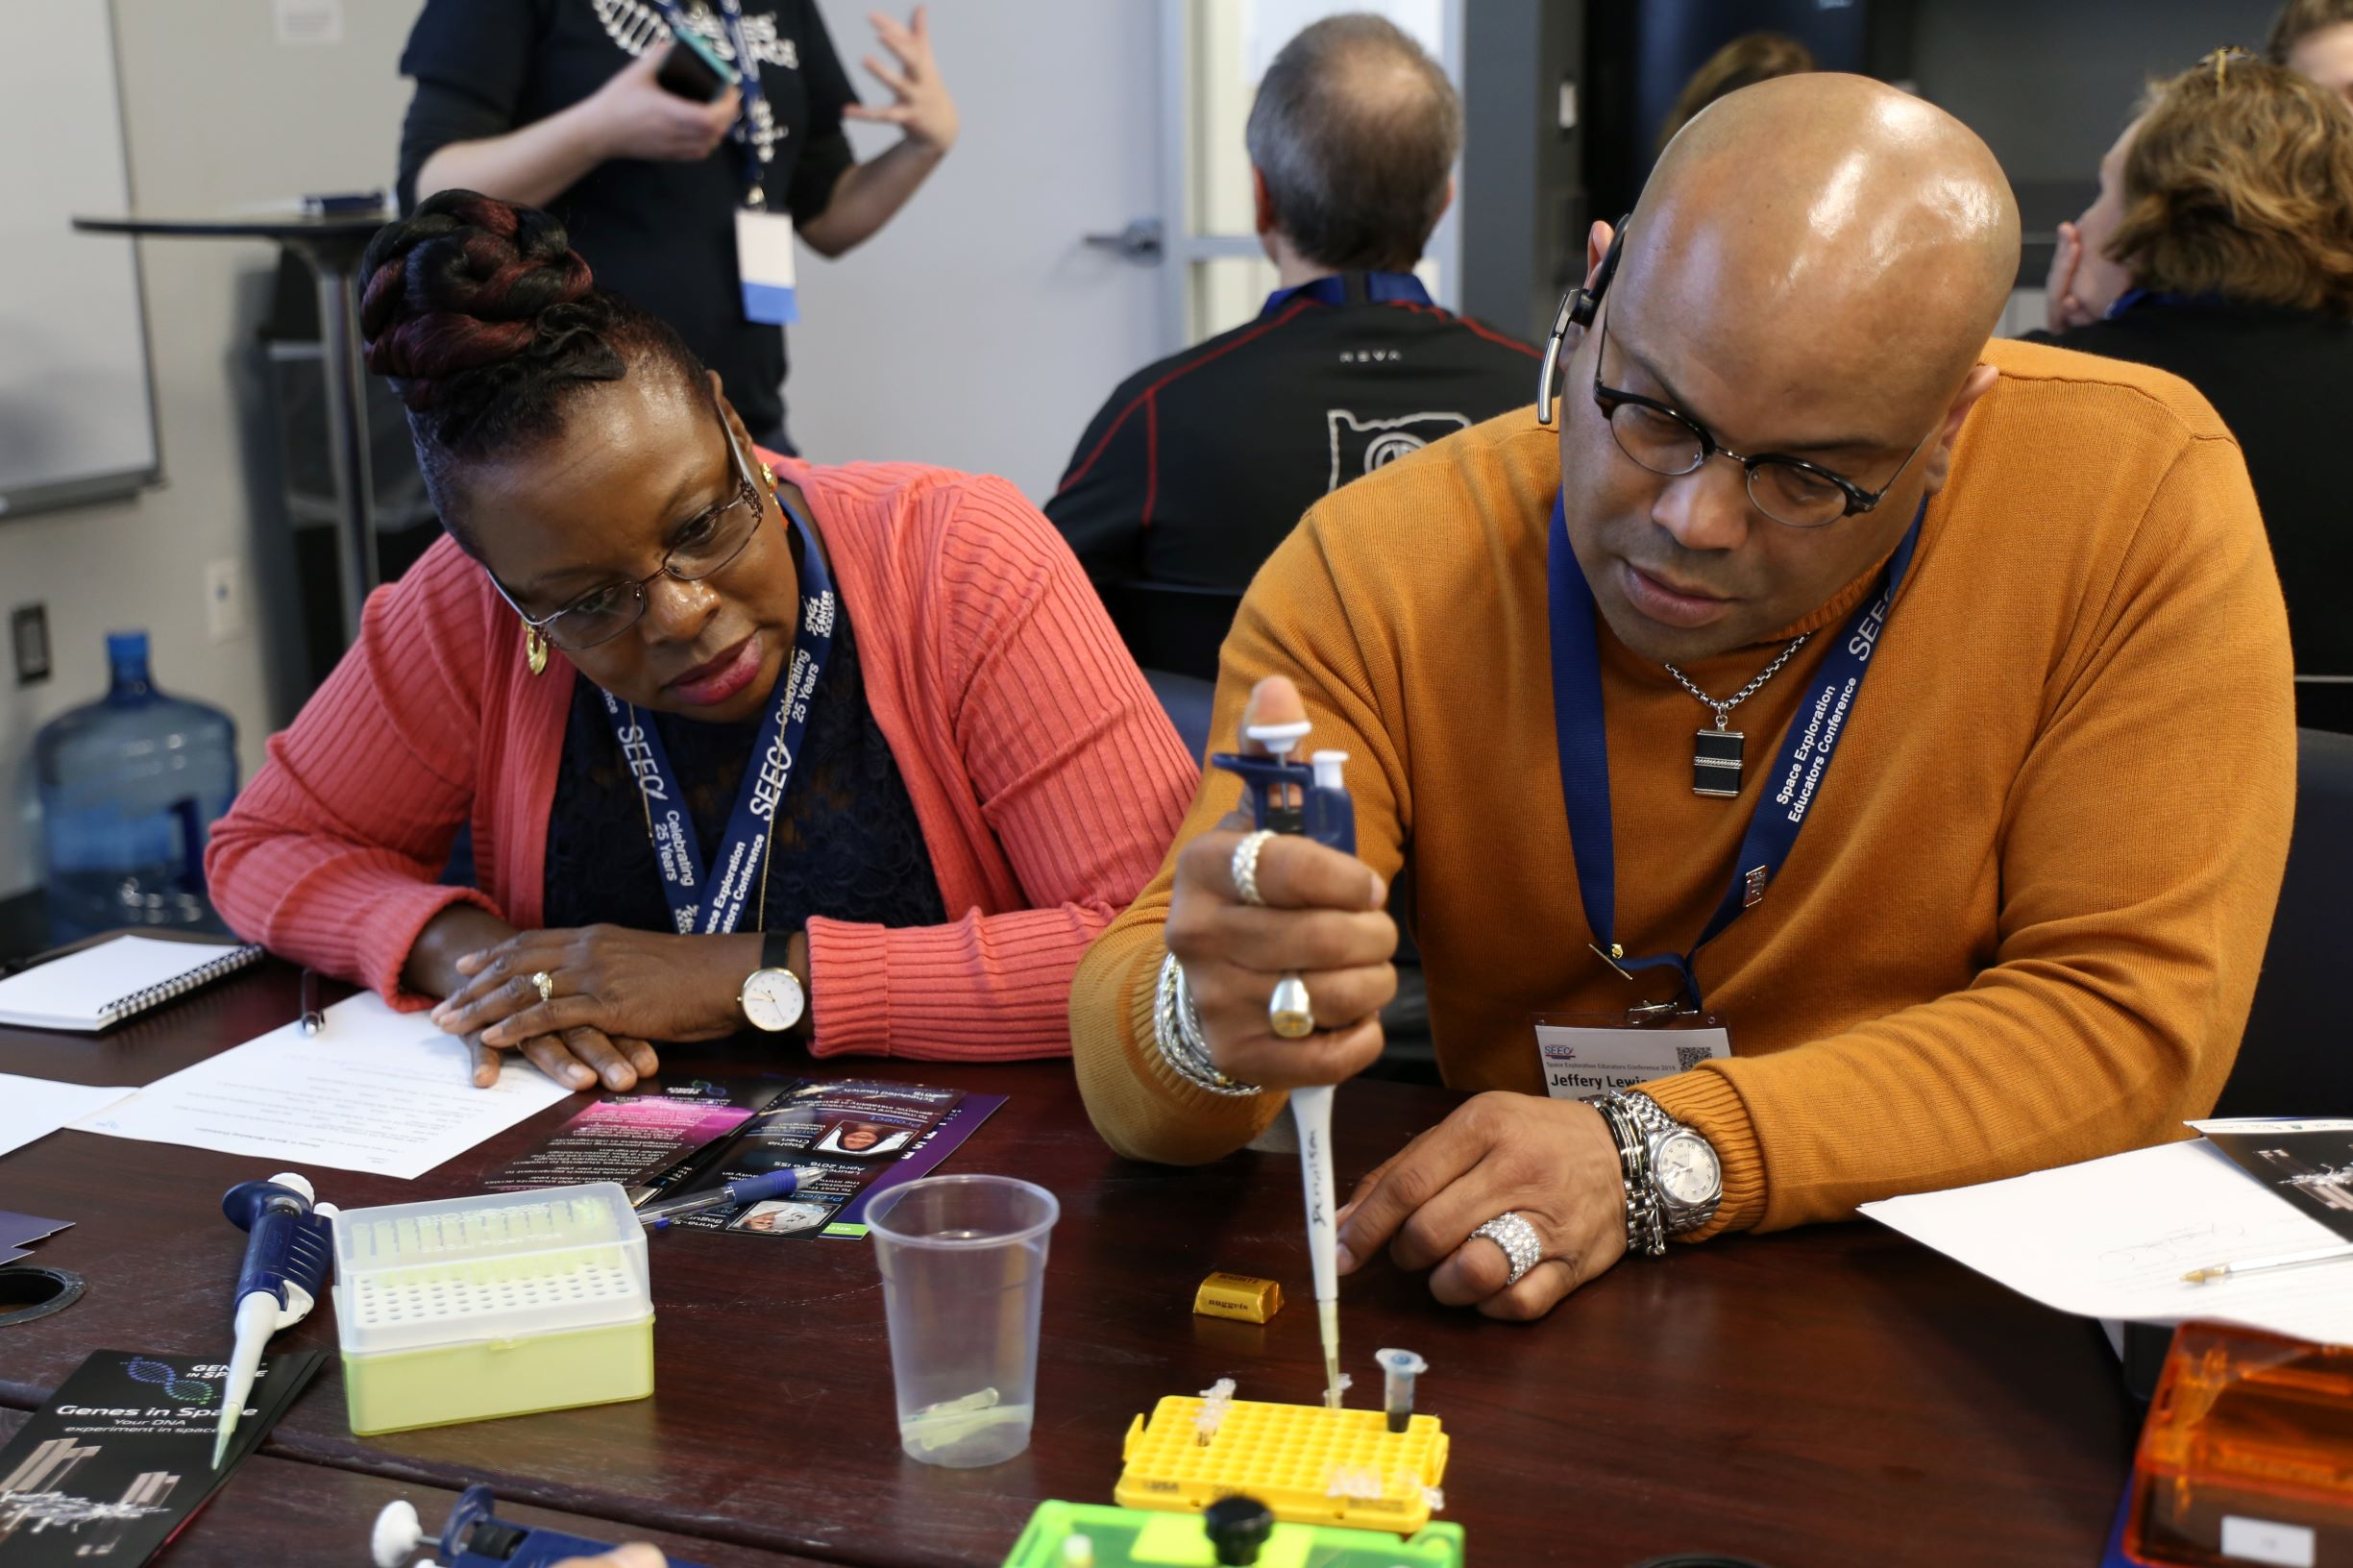 Space Center Houston Fuels Educators for the Next Giant Leap